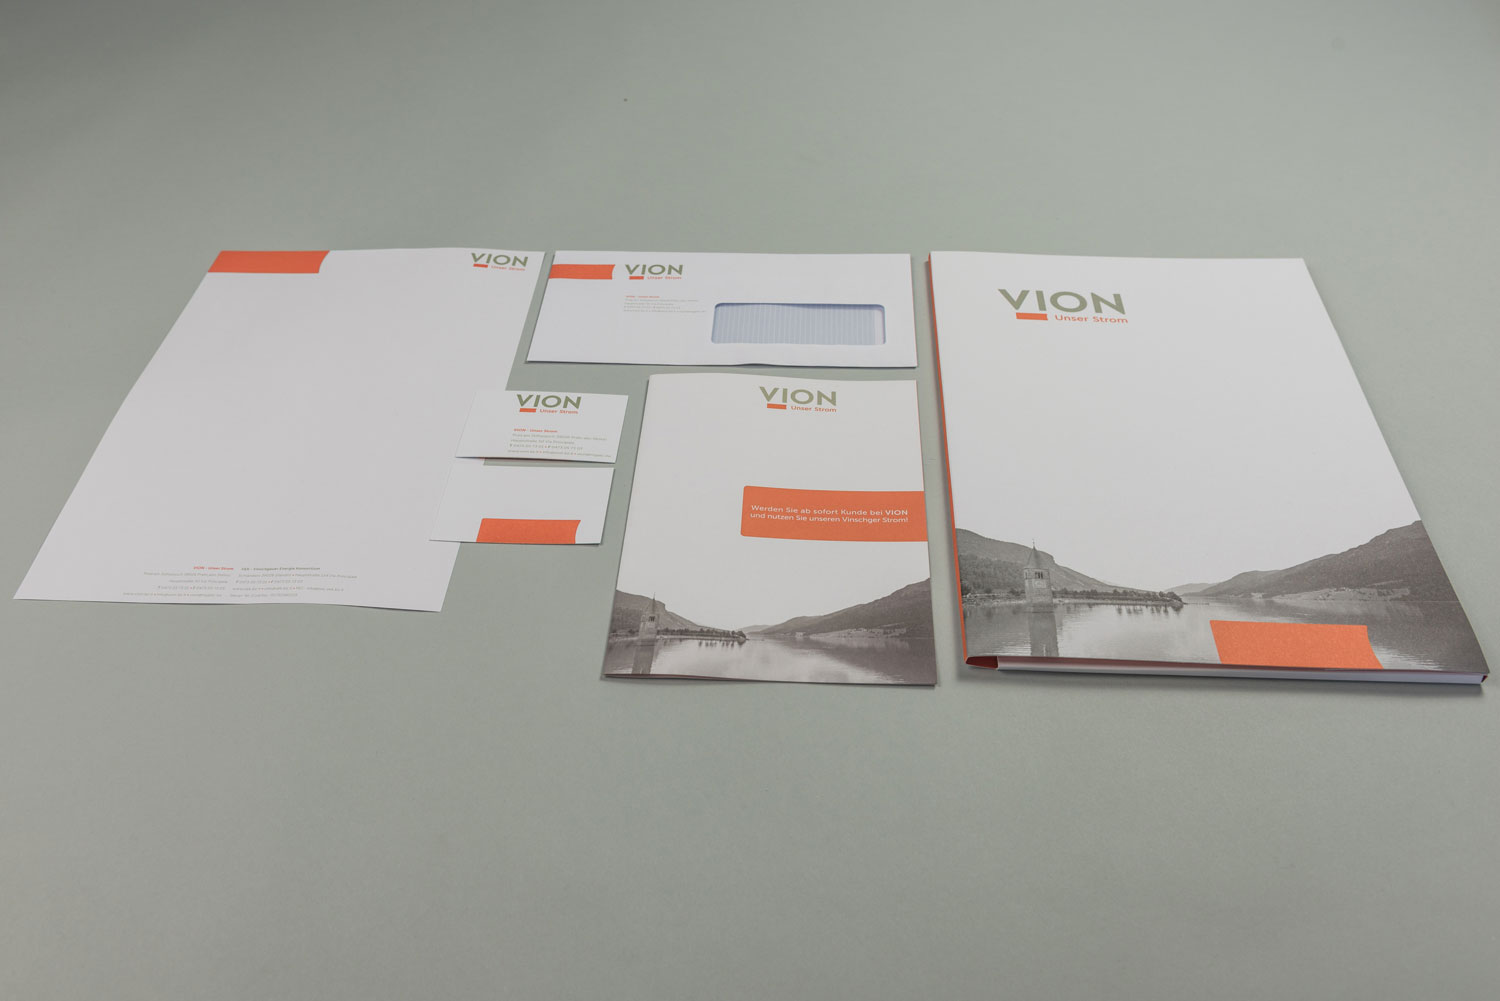 VION Corporate Design